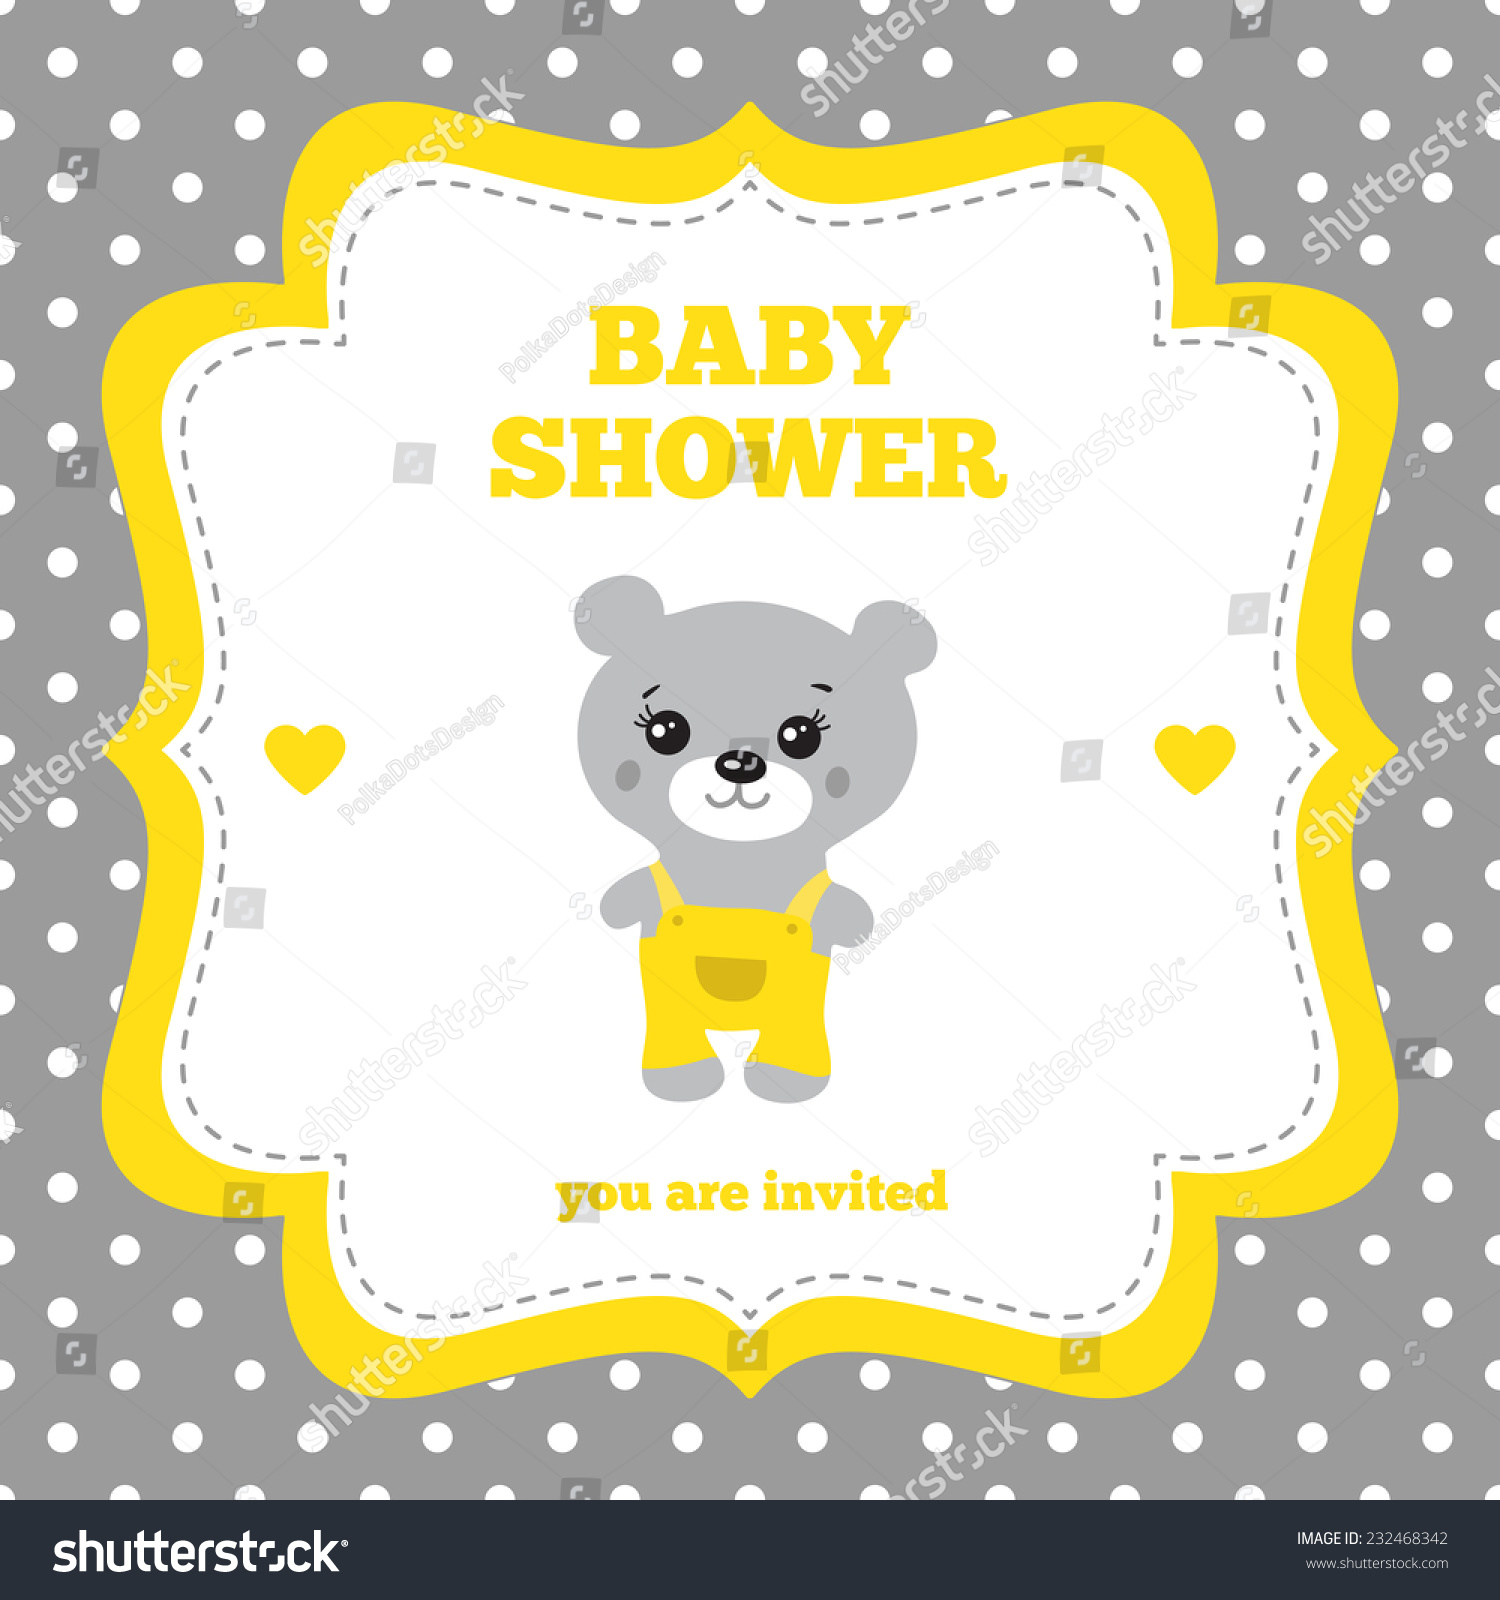 Baby Shower Invitation Template | Baby Shower Invitation Template Gray Yellow Stock Vector Royalty